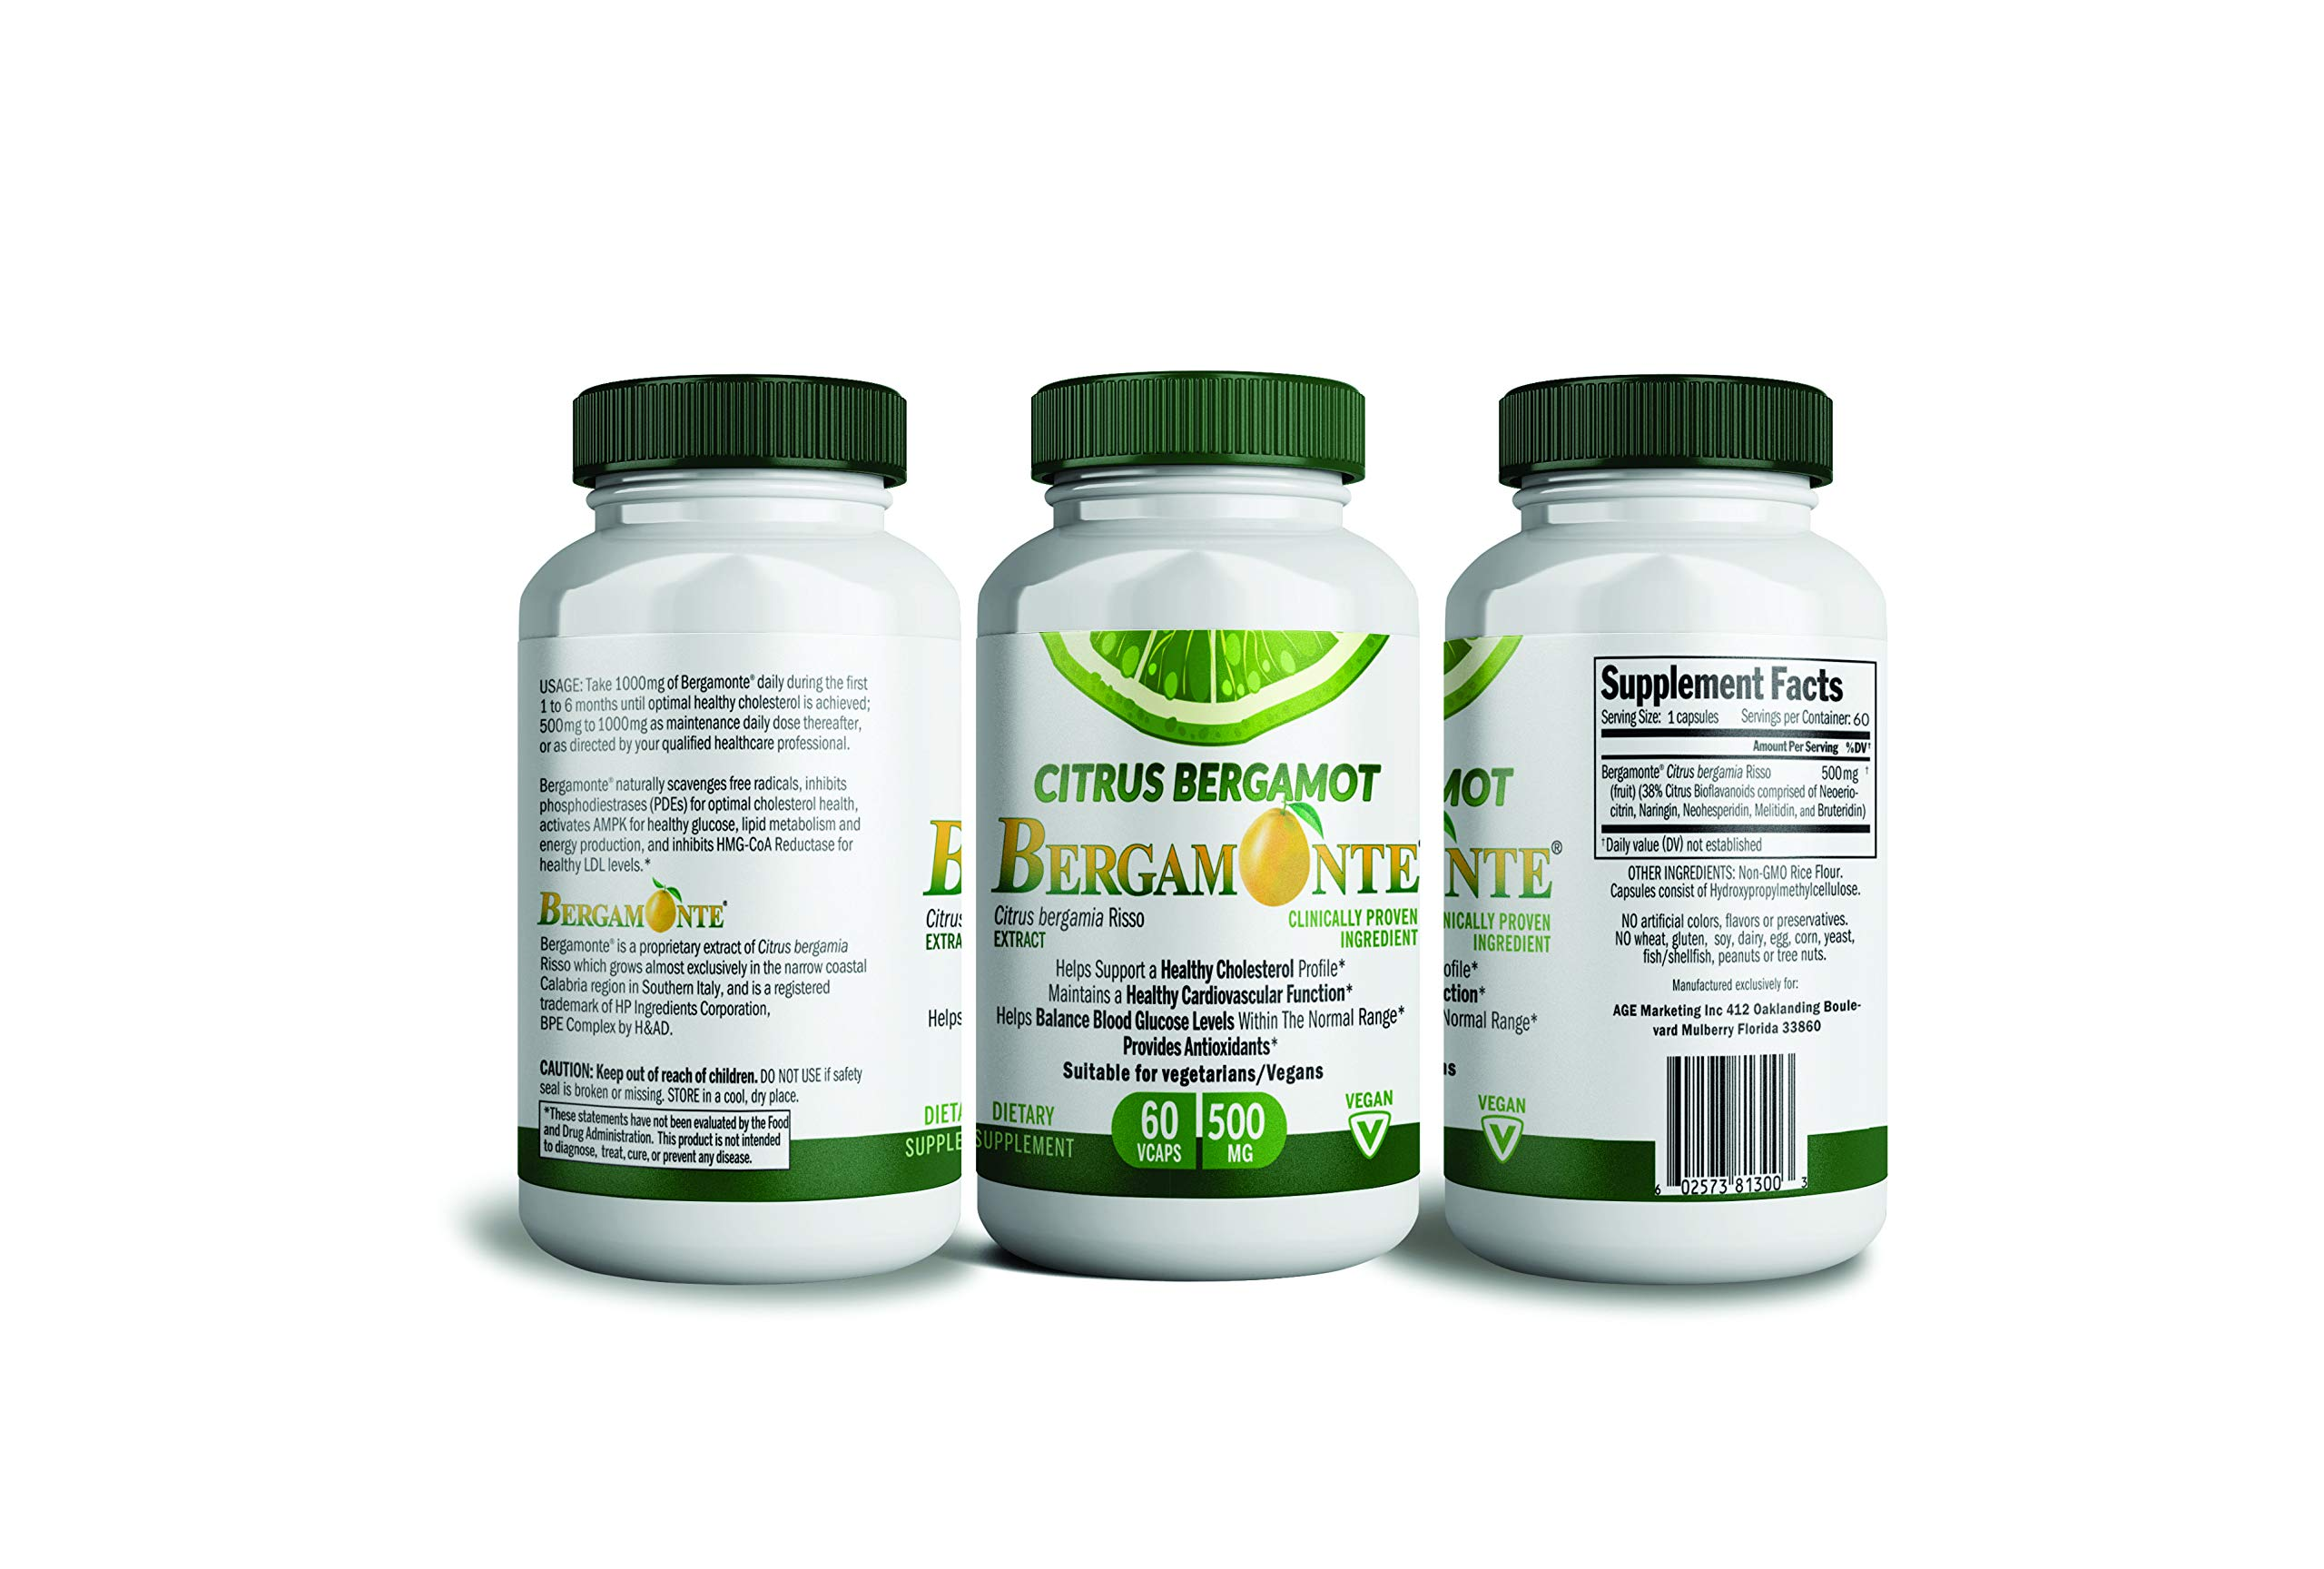 Citrus Bergamot, Cholesterol lowering Support, Bergamonte Supplement with Clinical Studies for Cholesterol Cardiovascular Blood Sugar and Weight Loss 60 Vegetarian Capsules 500MG Each Polyphenolic 22